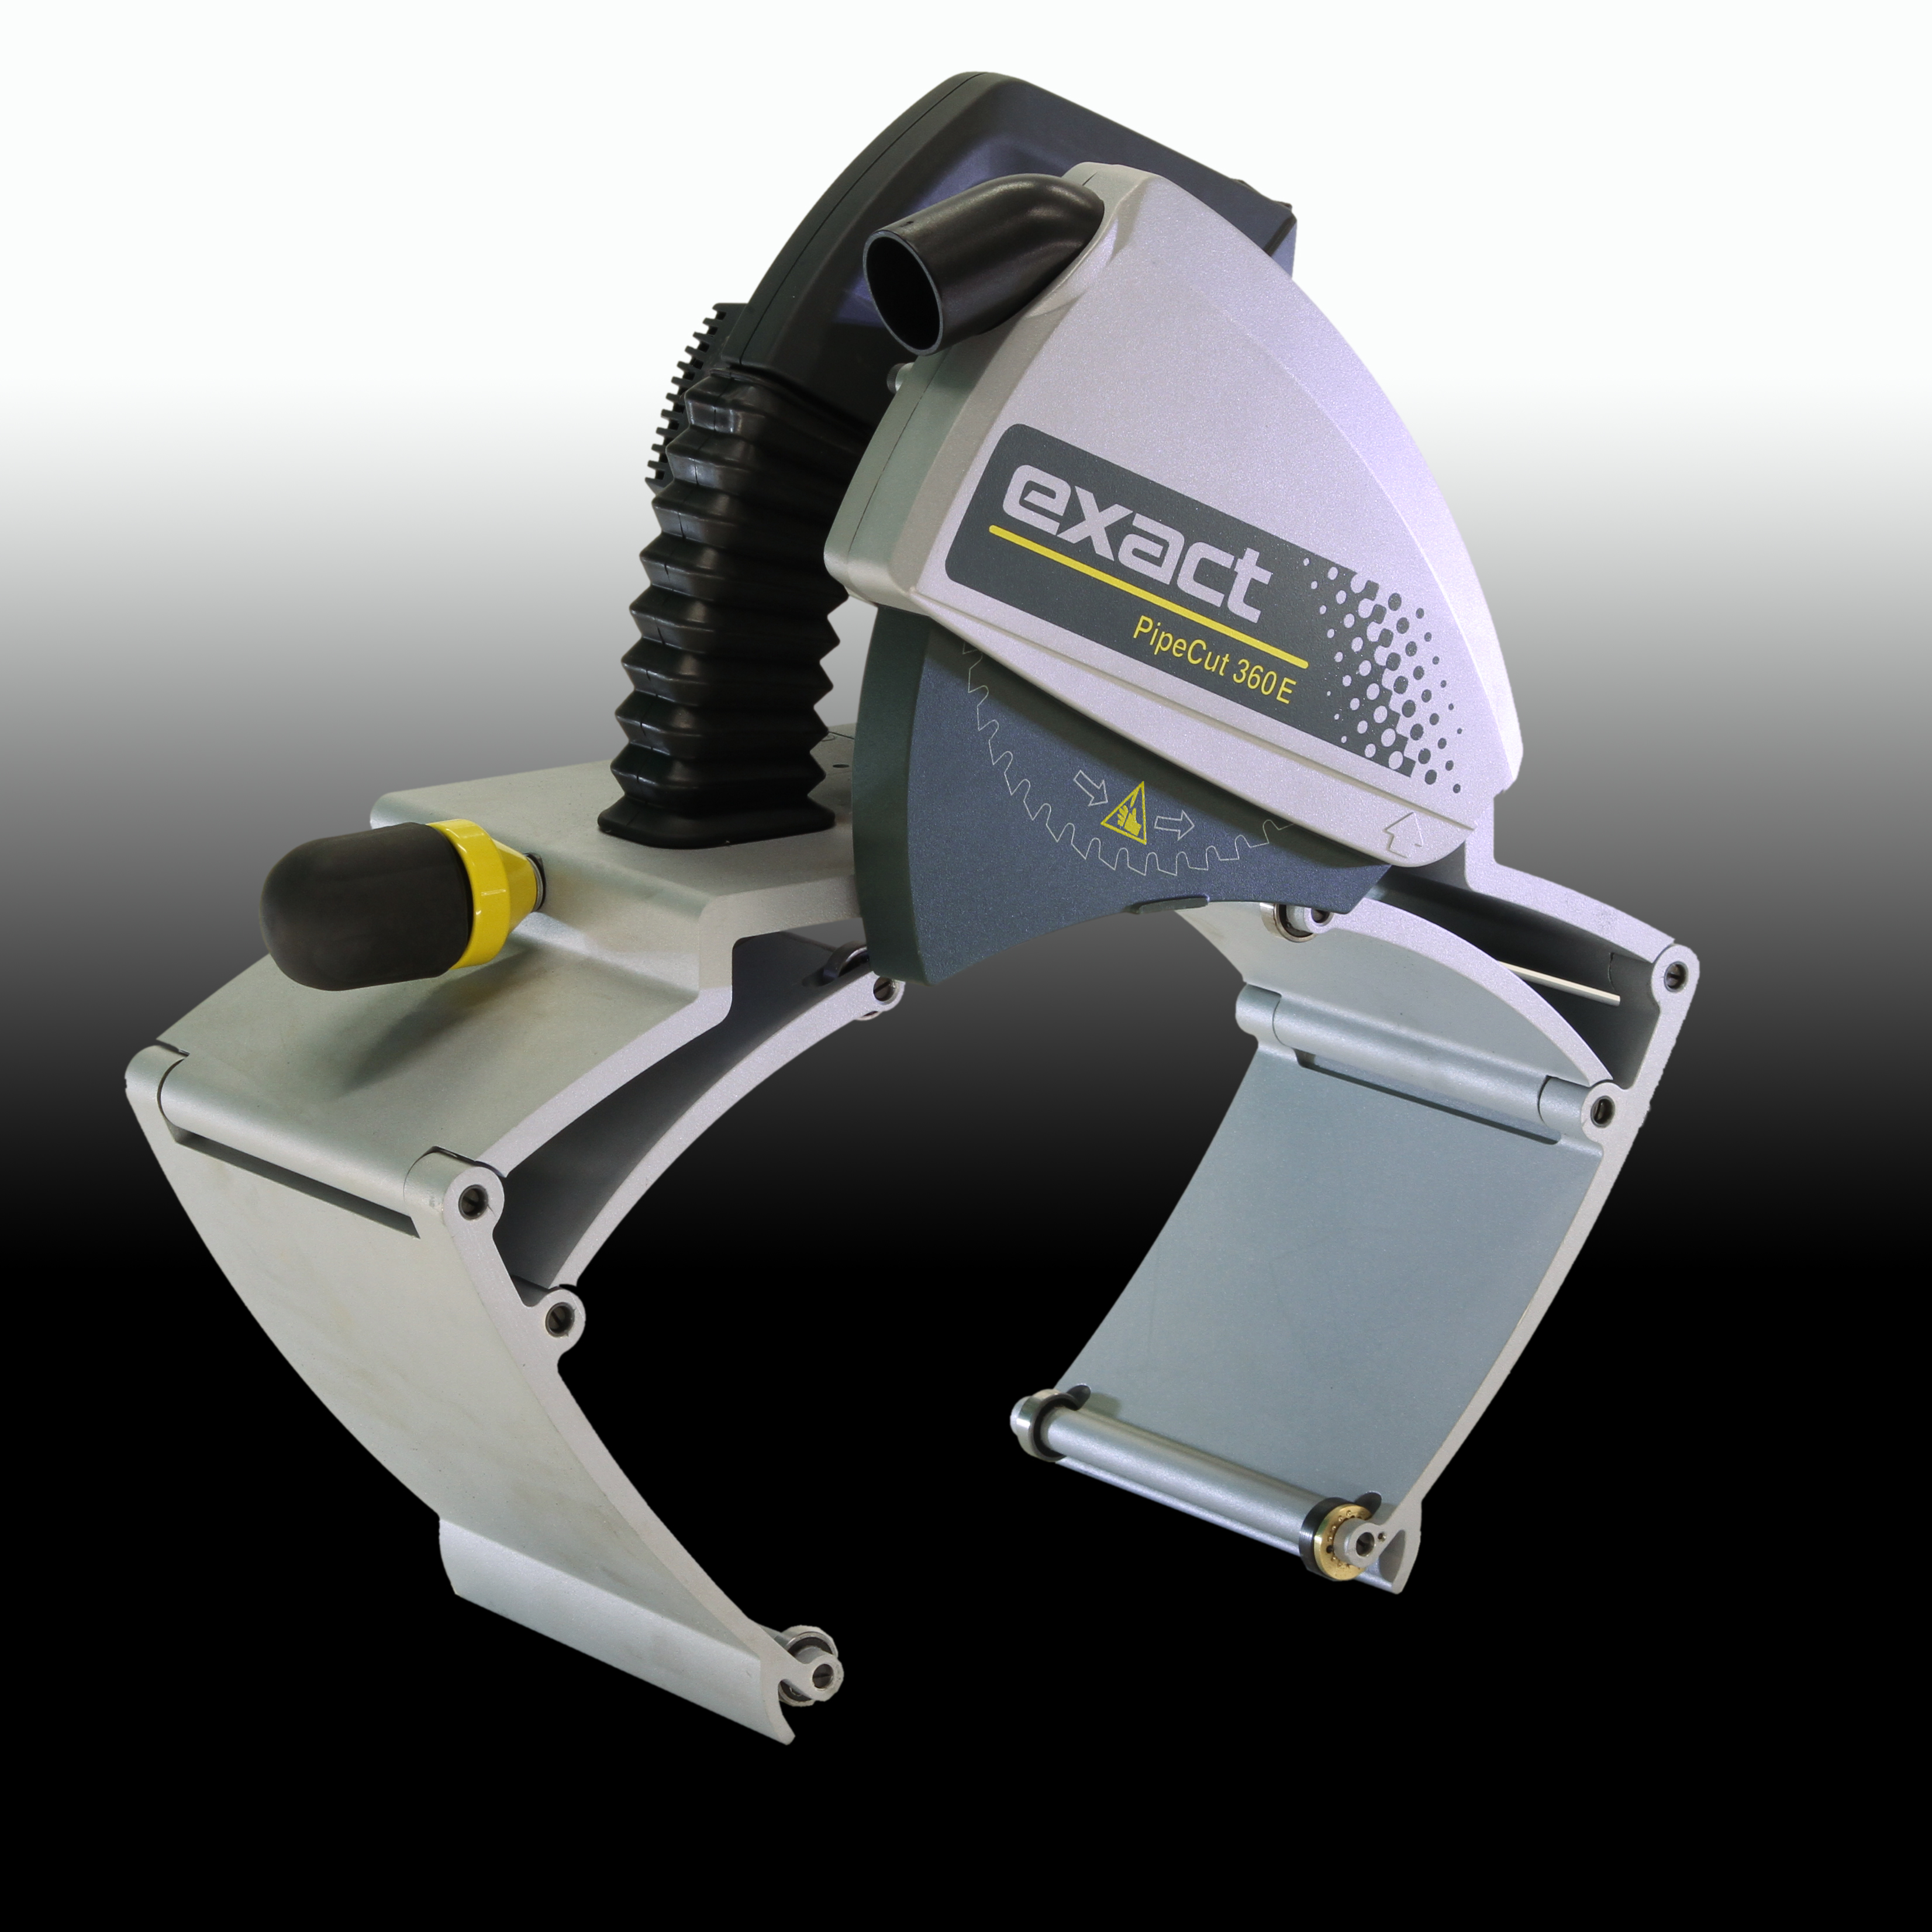 Stainless steel pipe cutter extremely fast cutting